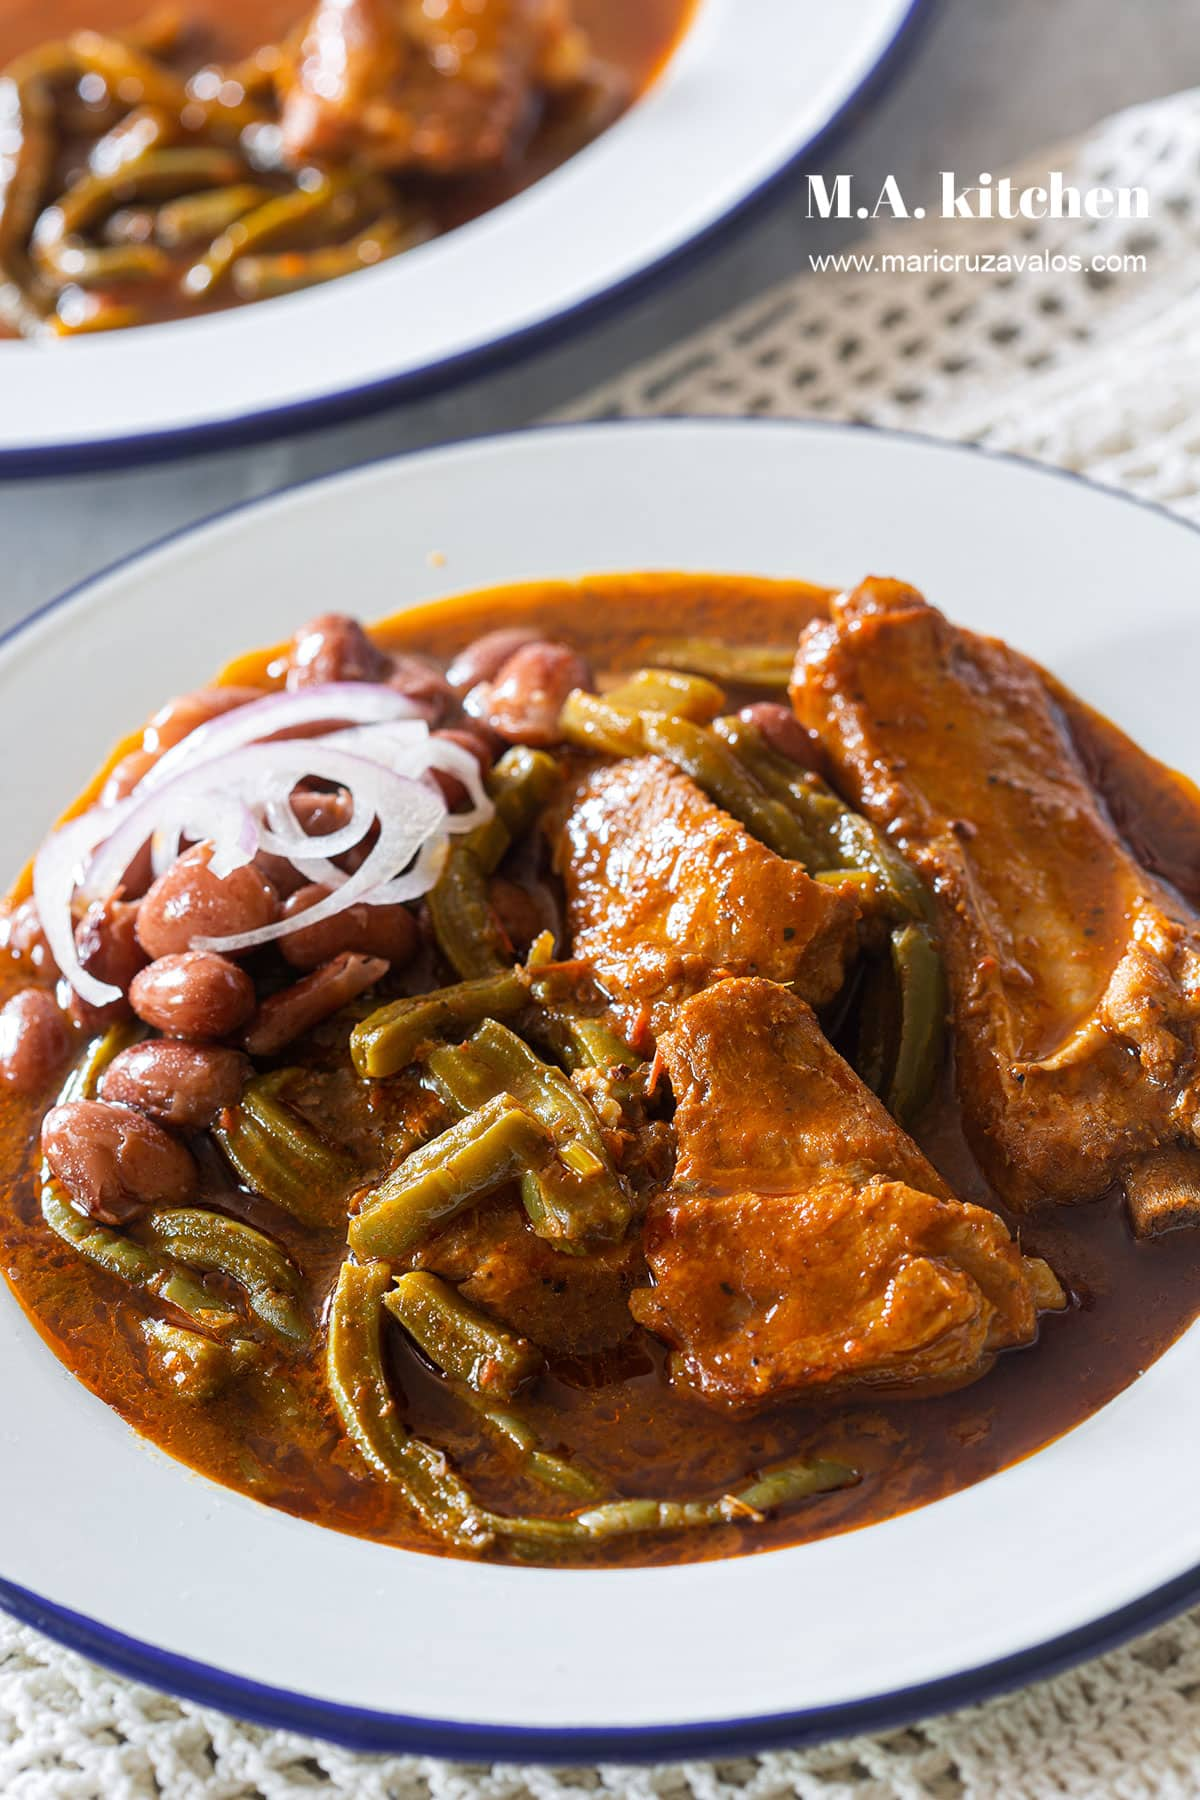 Nopales recipe with pork ribs braised in a chili sauce.